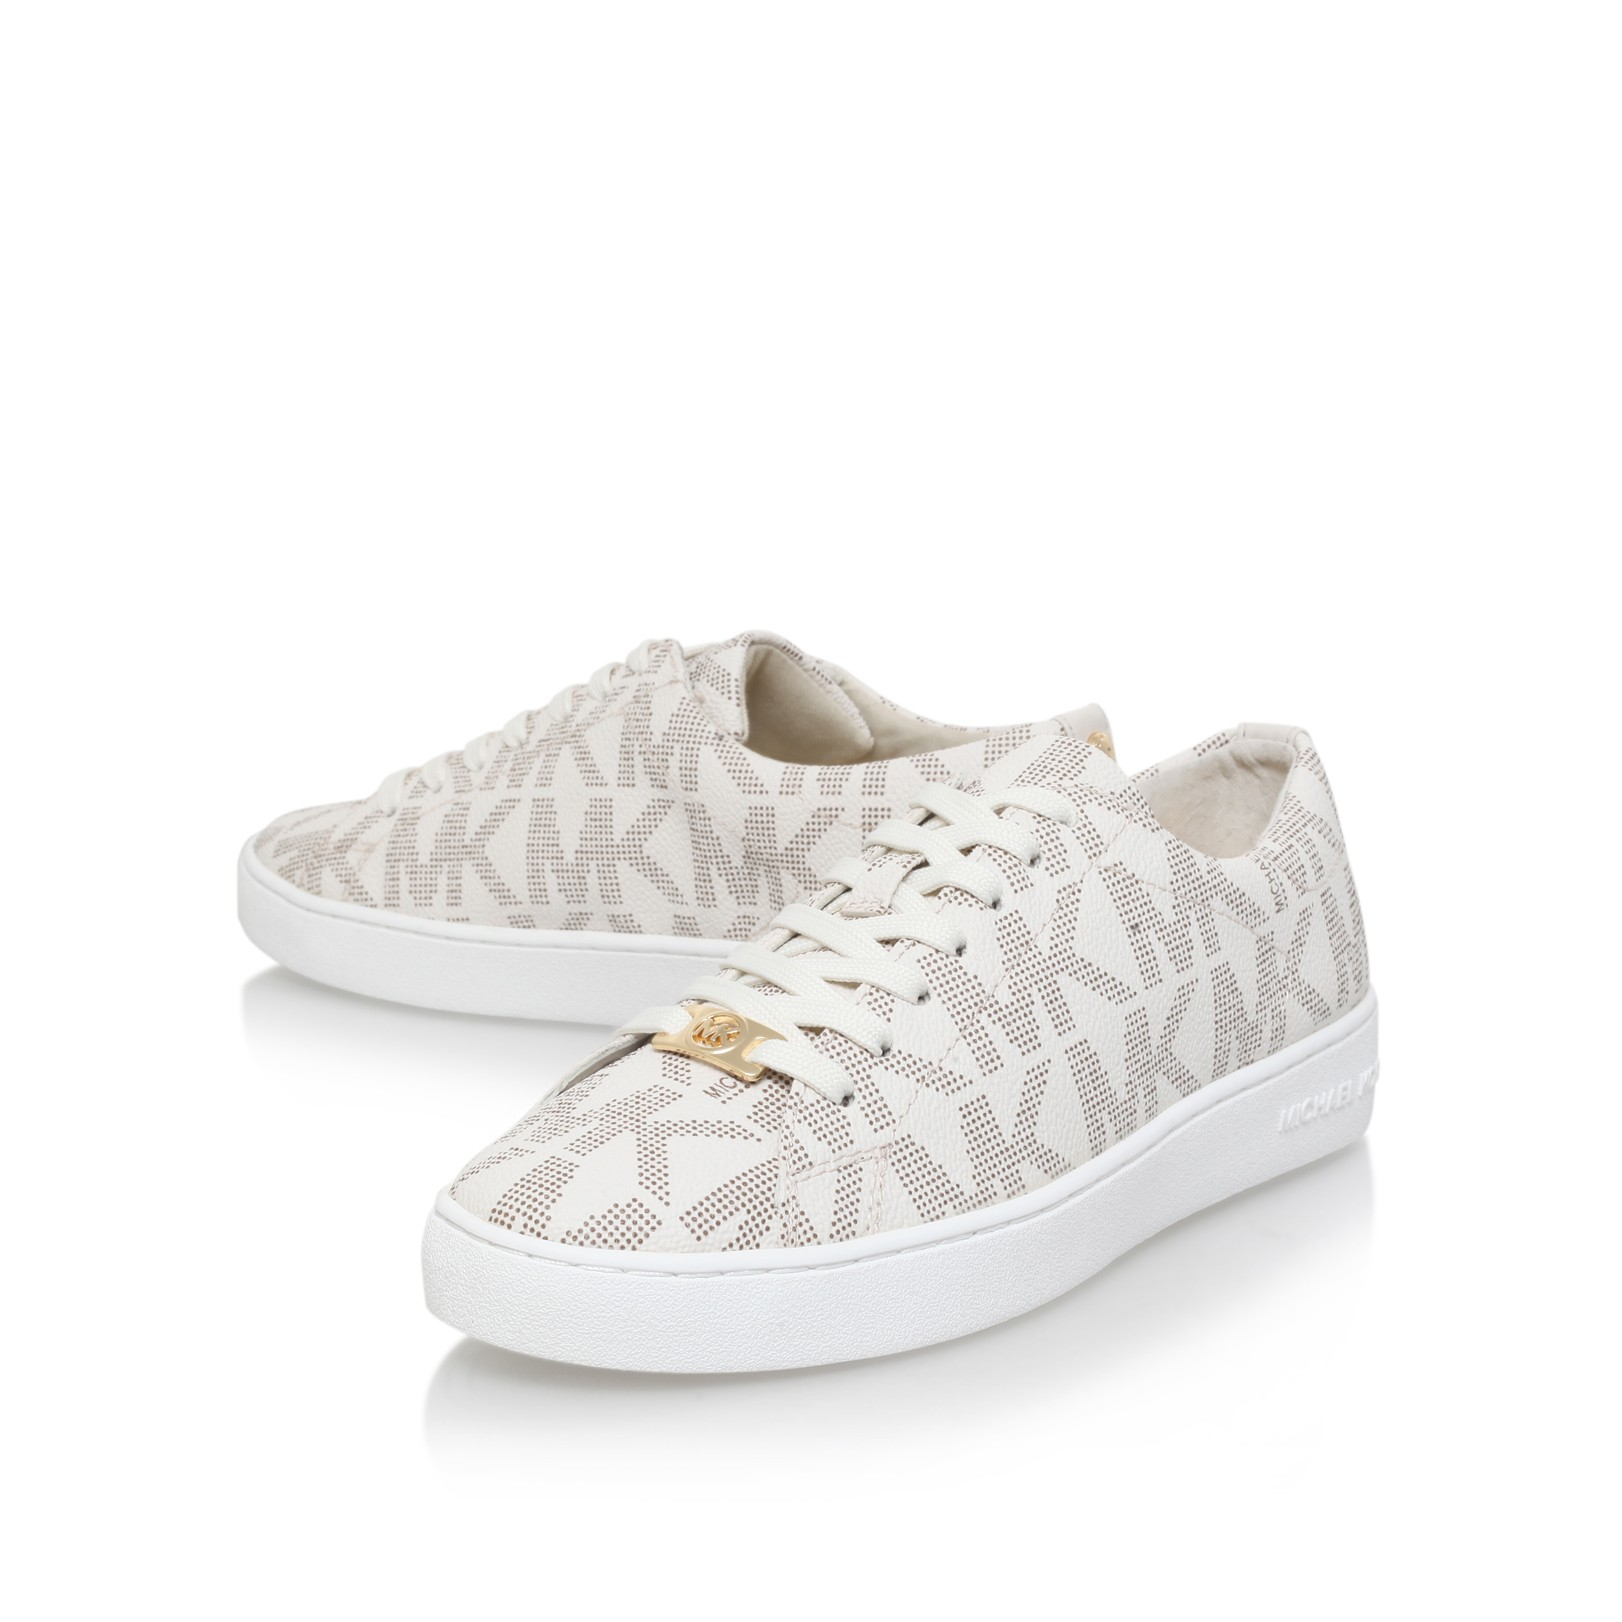 michael michael kors keaton sneaker in white lyst. Black Bedroom Furniture Sets. Home Design Ideas